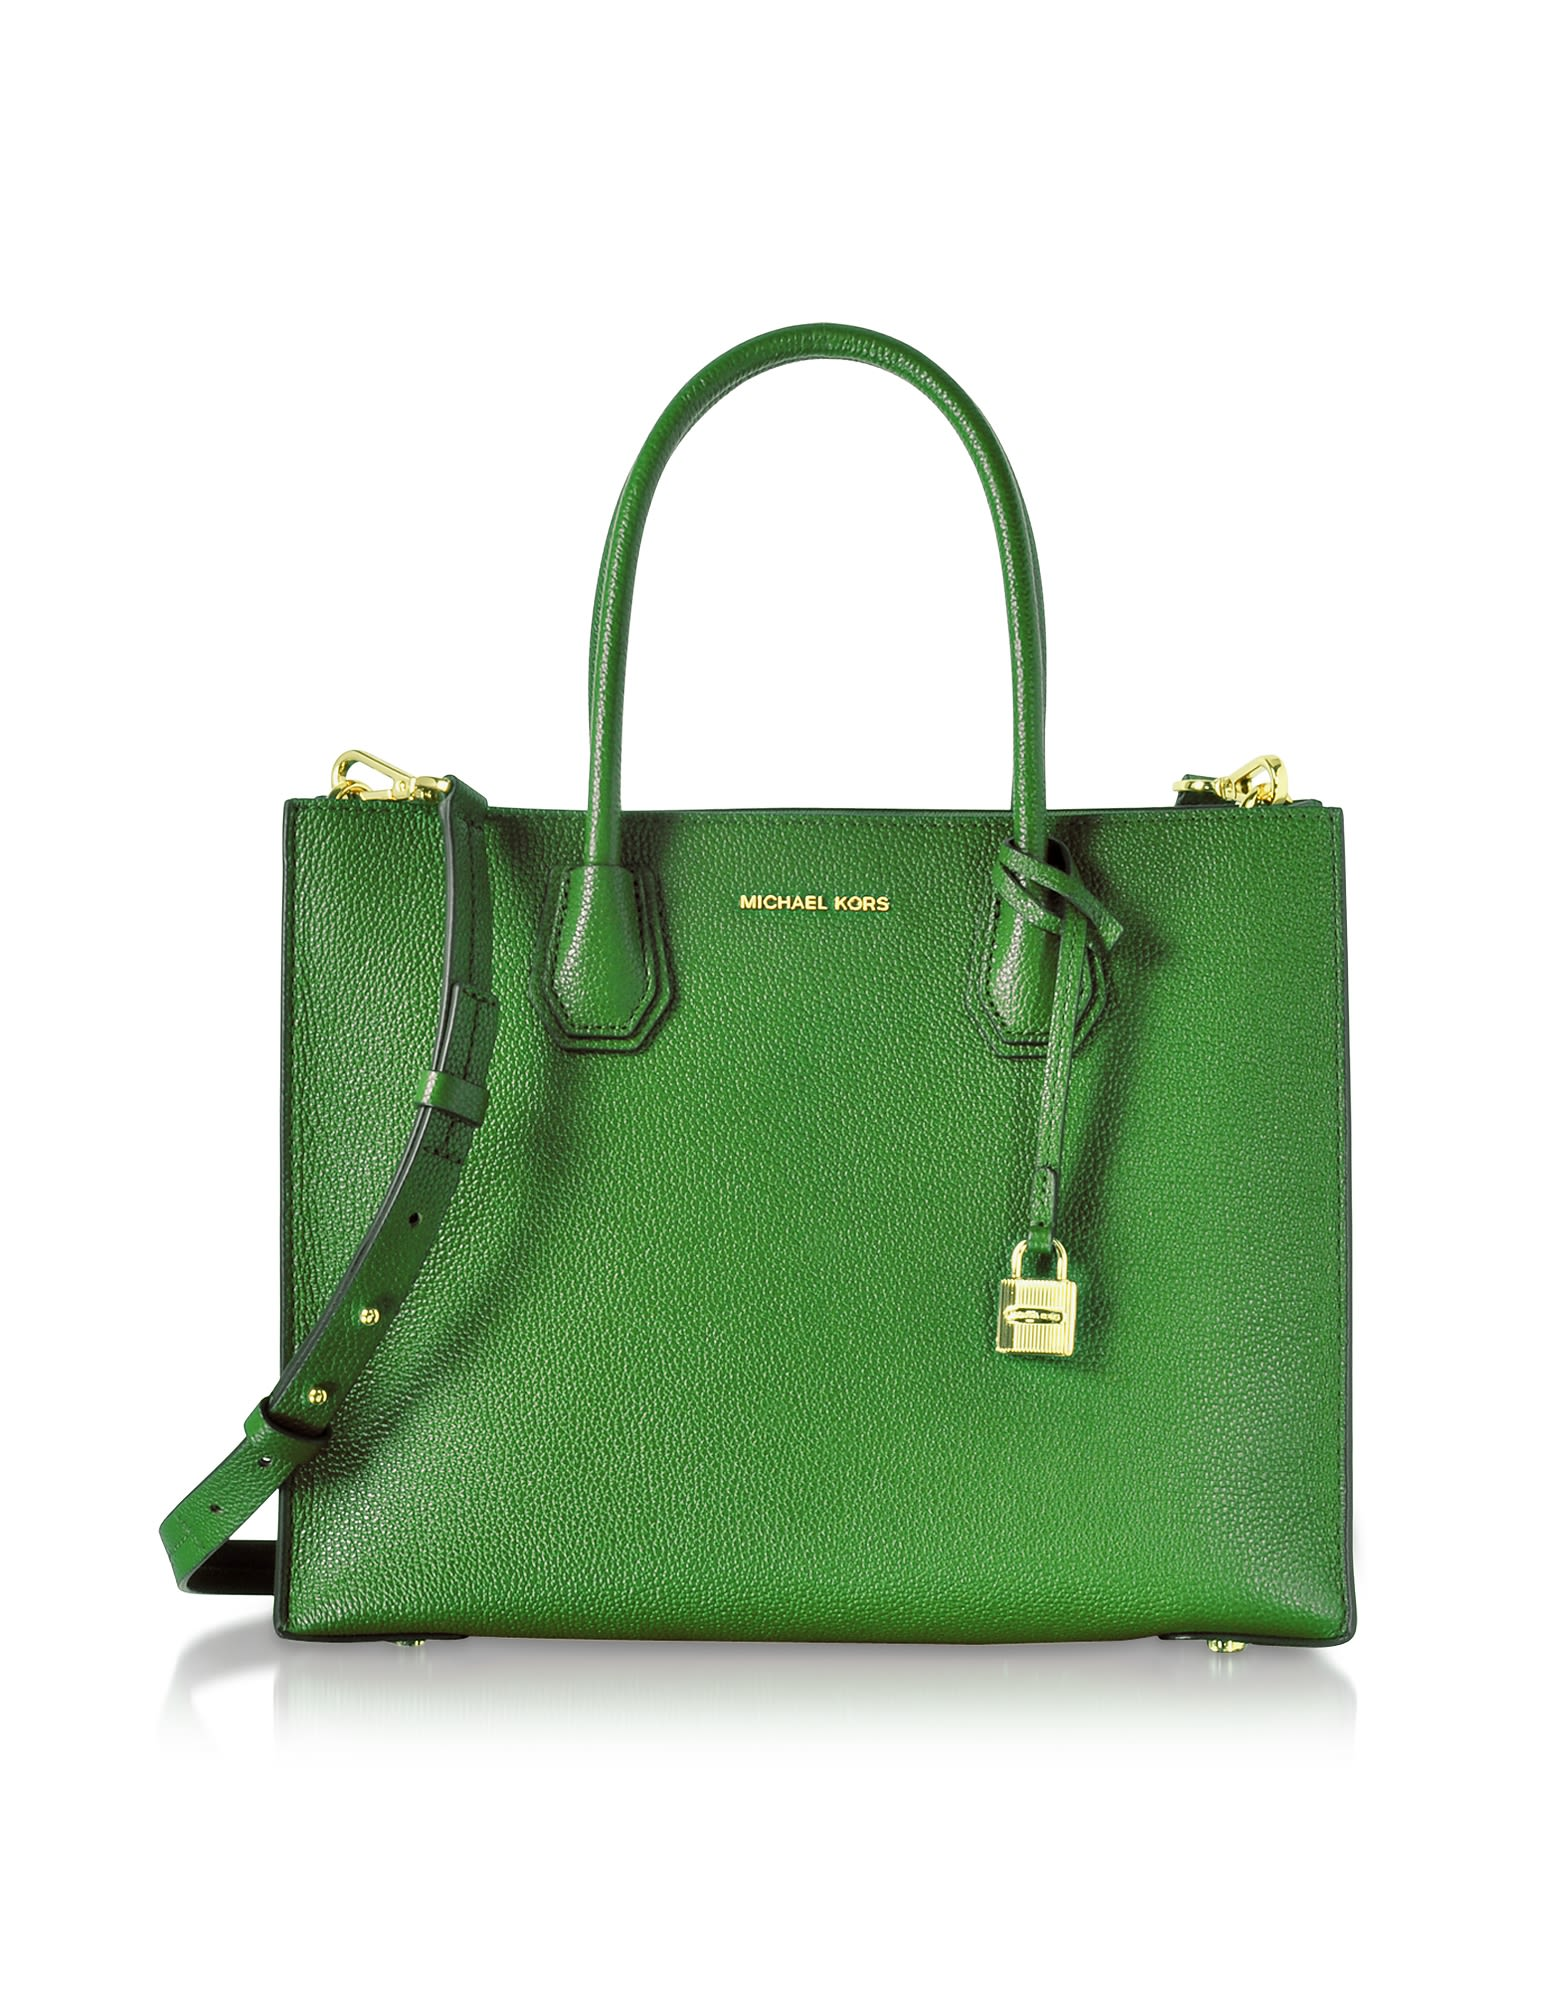 MERCER LARGE LEATHER TOTE